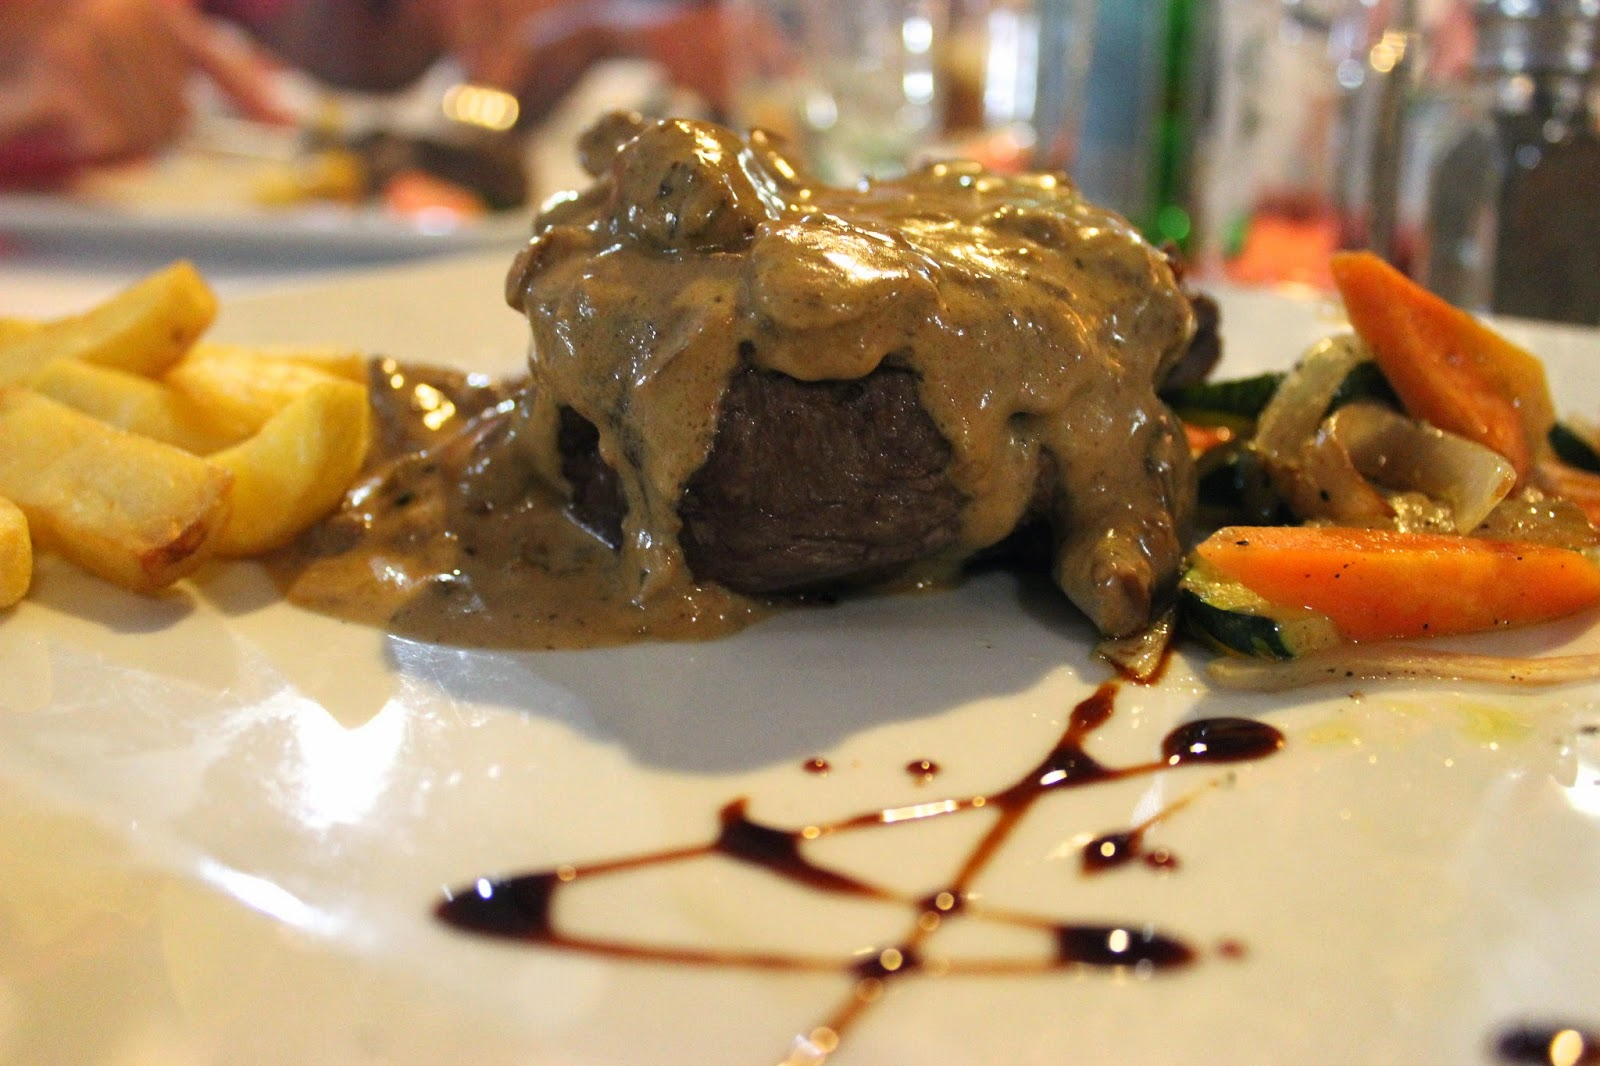 eating & drinking, lanzarote, holiday, canary island, That Guy Luke, food, evening dinner, spain, spanish food, steak, holiday destination, food review, puerto del carmen, ironman lanzarote, family, friends, drinking, blog review, blogger, Male Blogger,